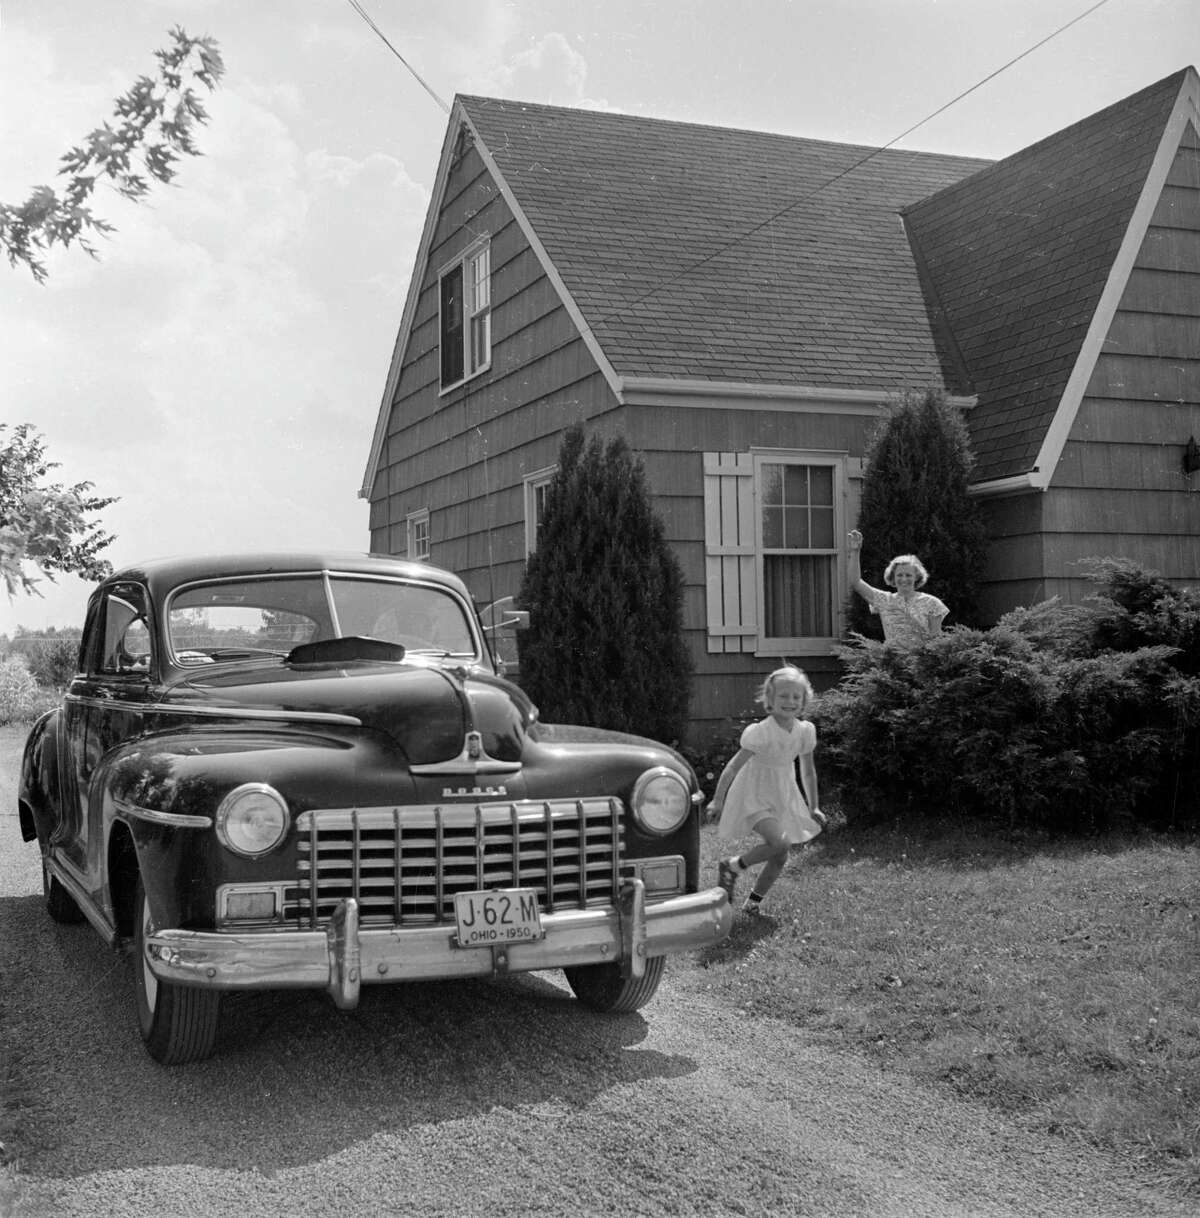 19. 44507: Located at Youngstown, Ohio, this ZIP code is home to 1,433 families where the median family income is more than $20,372. The photo above pictures the home and family of a Youngstown steelworker in 1950. According to the caption, he was making about $3,800 a year then - equivalent to $36,500 now.